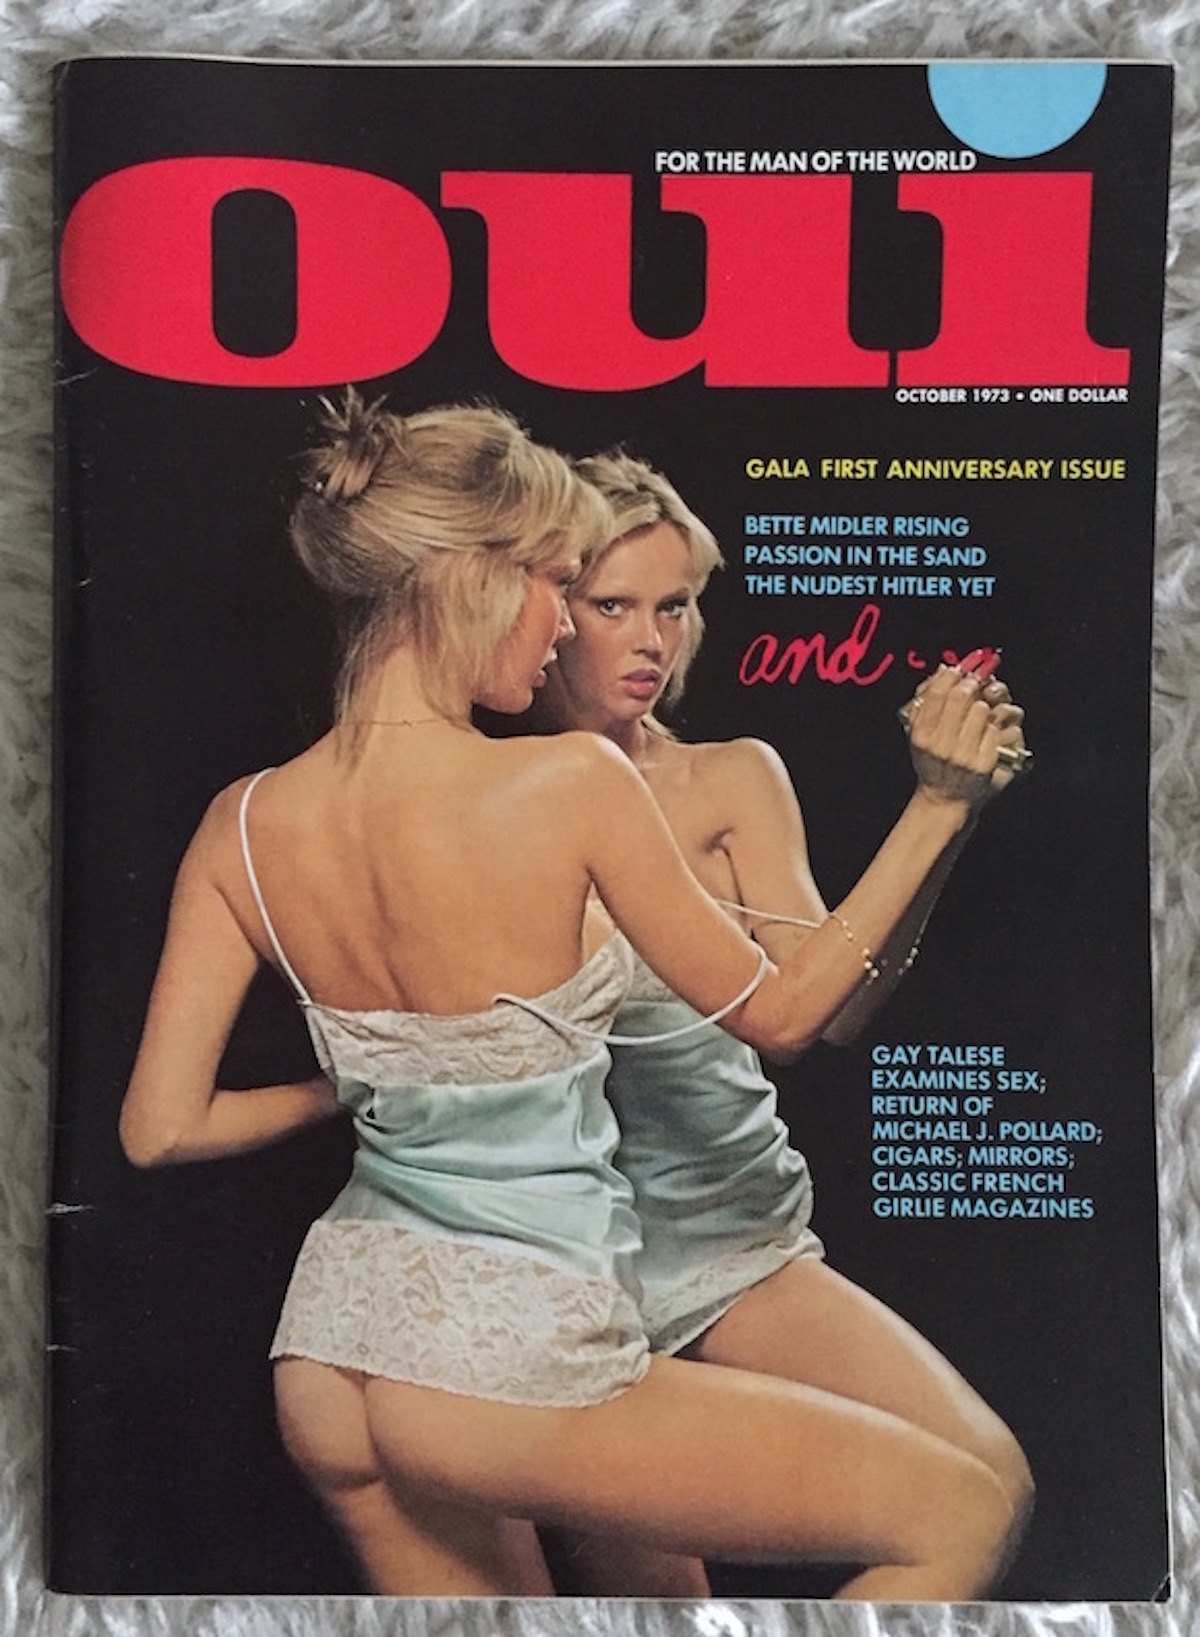 Oui, October 1973. Photographer and model uncredited